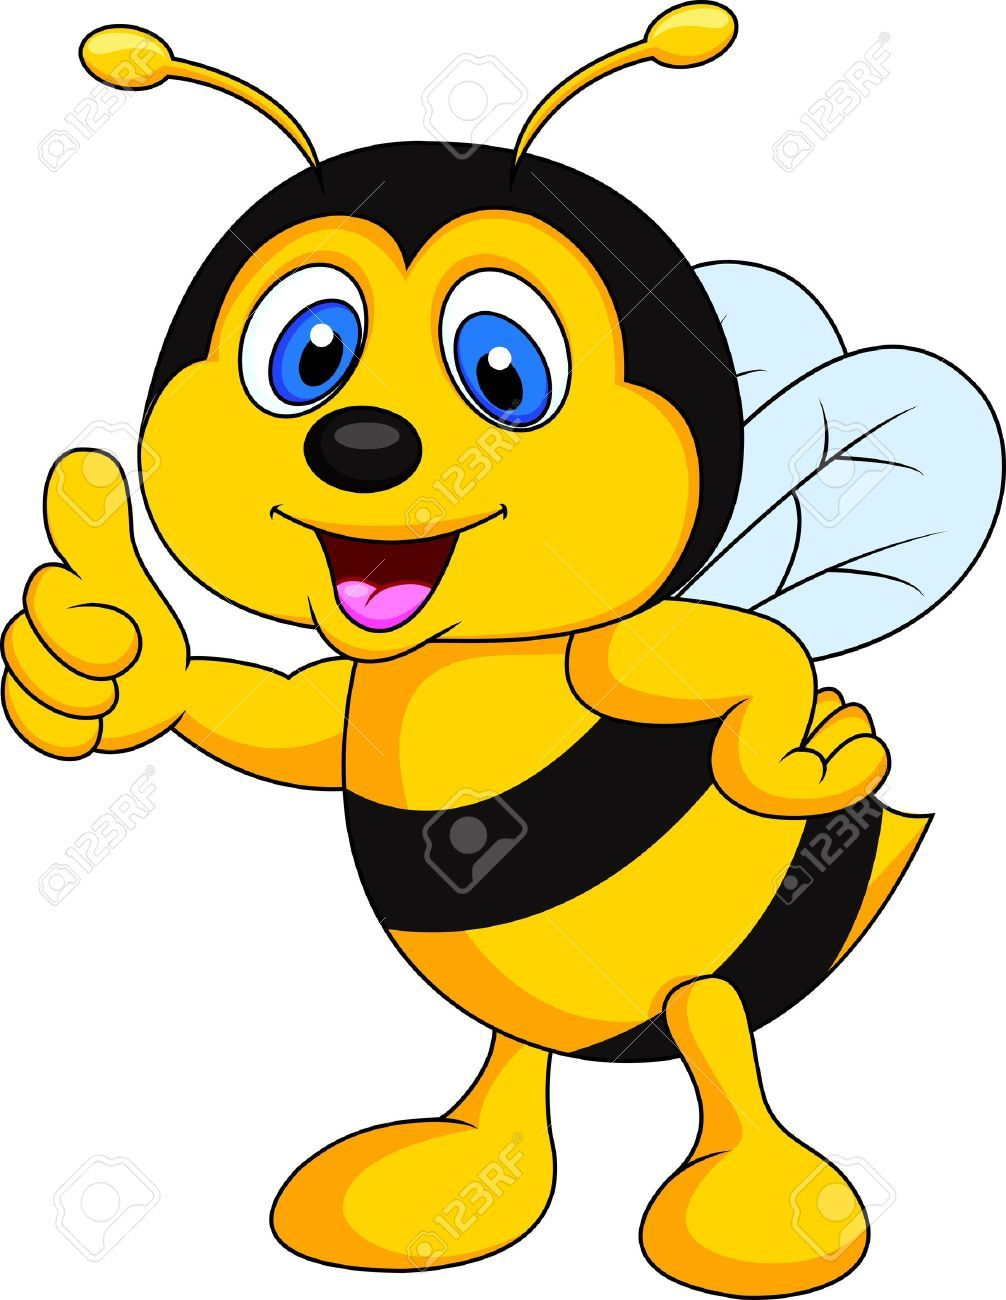 Thumbs up cute. Stock photo abejas bee